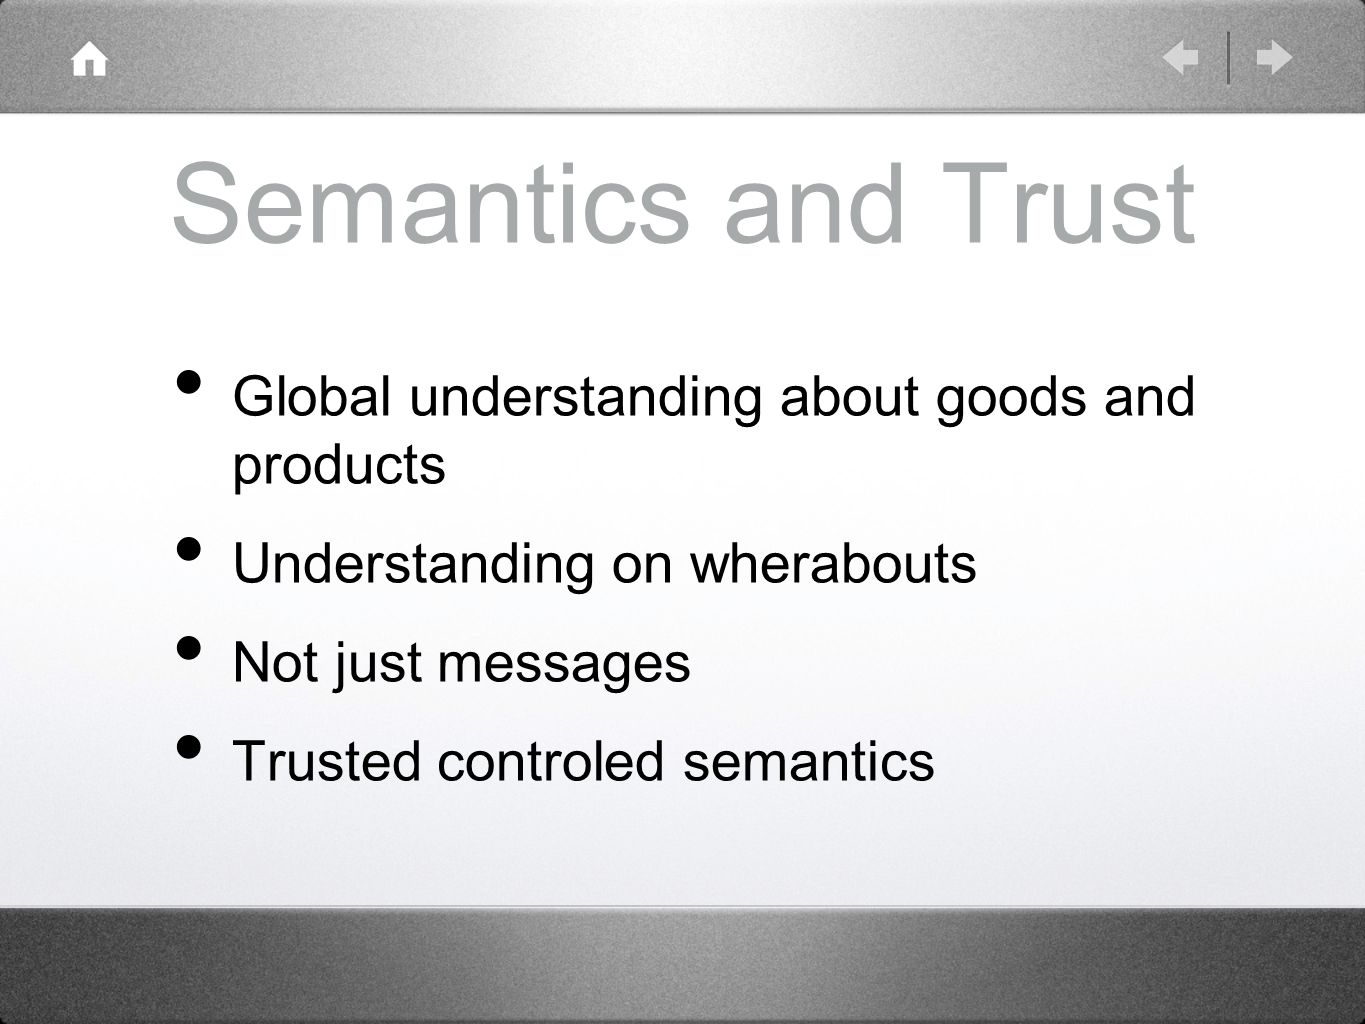 Semantics and Trust Global understanding about goods and products Understanding on wherabouts Not just messages Trusted controled semantics